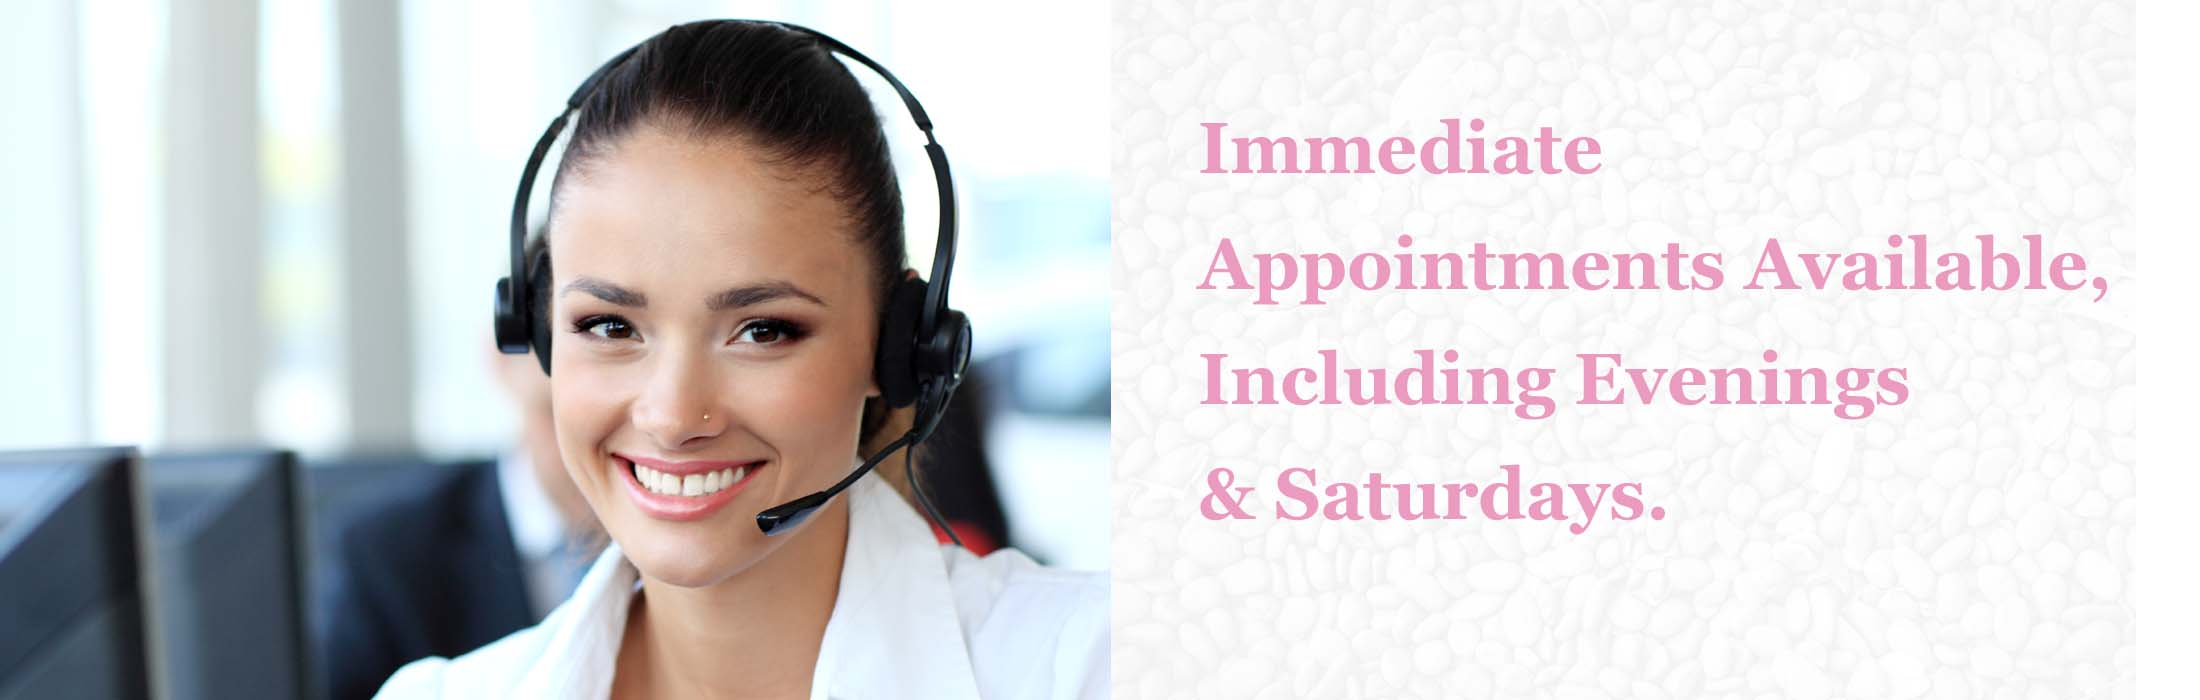 Immediate Appointments Available, Including Evenings & Saturdays.